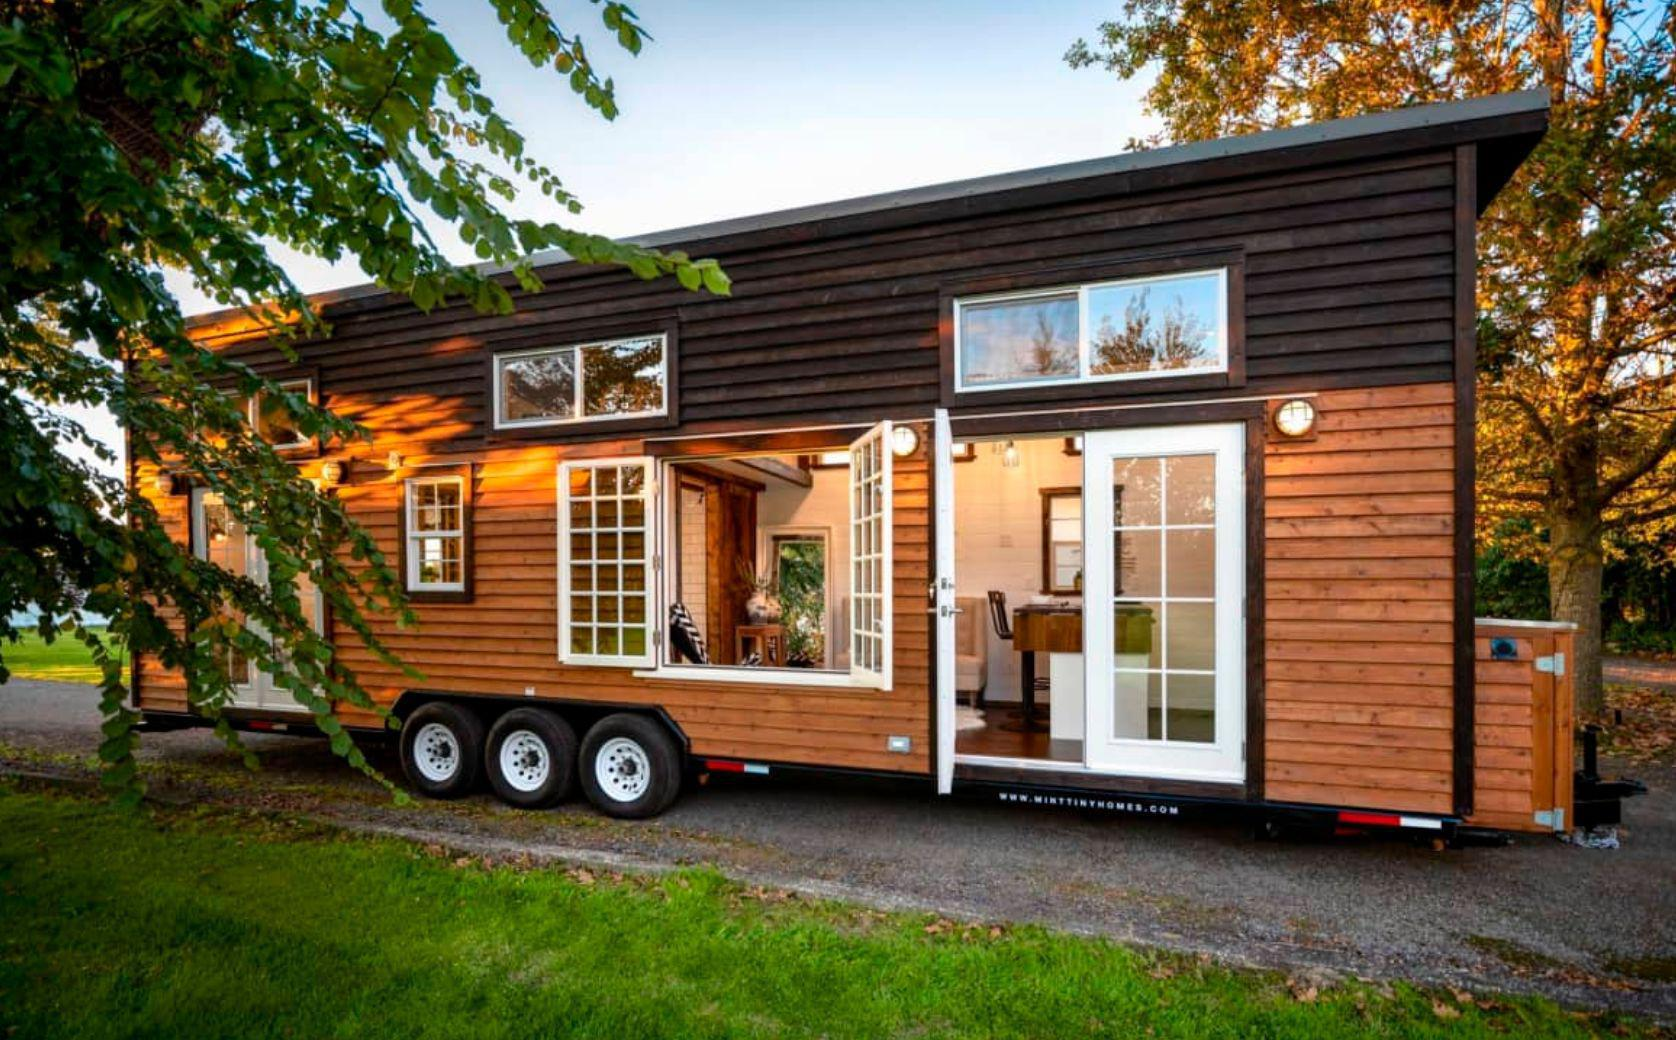 34 Tiny House With Double French Doors